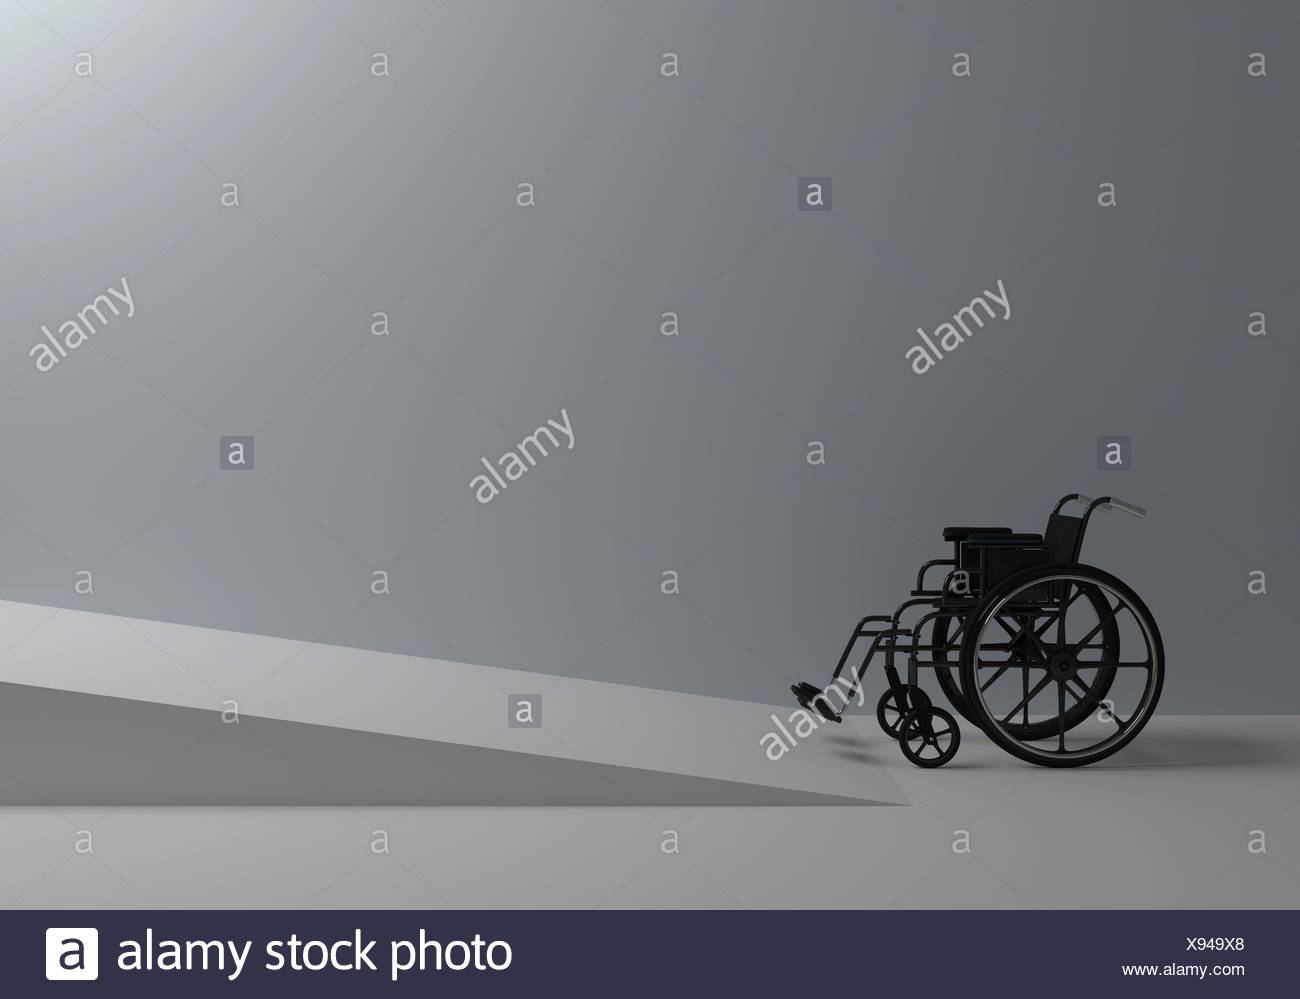 wheelchair in front of the ramp for the disabled - Stock Image